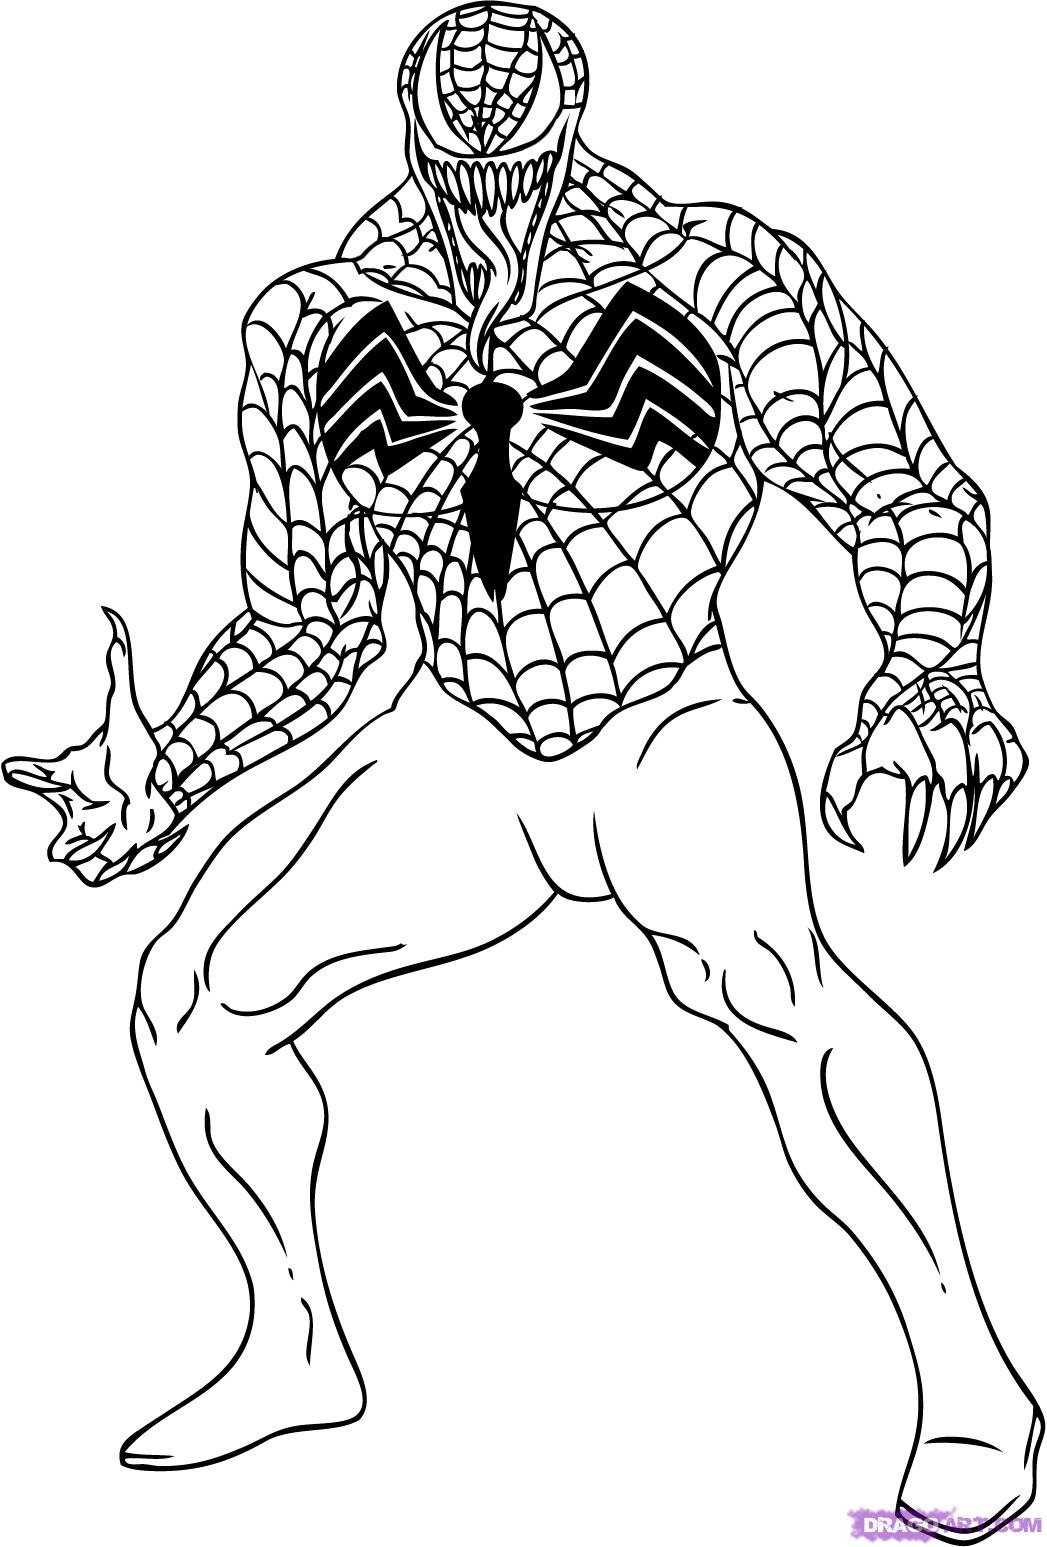 20 Free Printable Marvel Coloring Pages